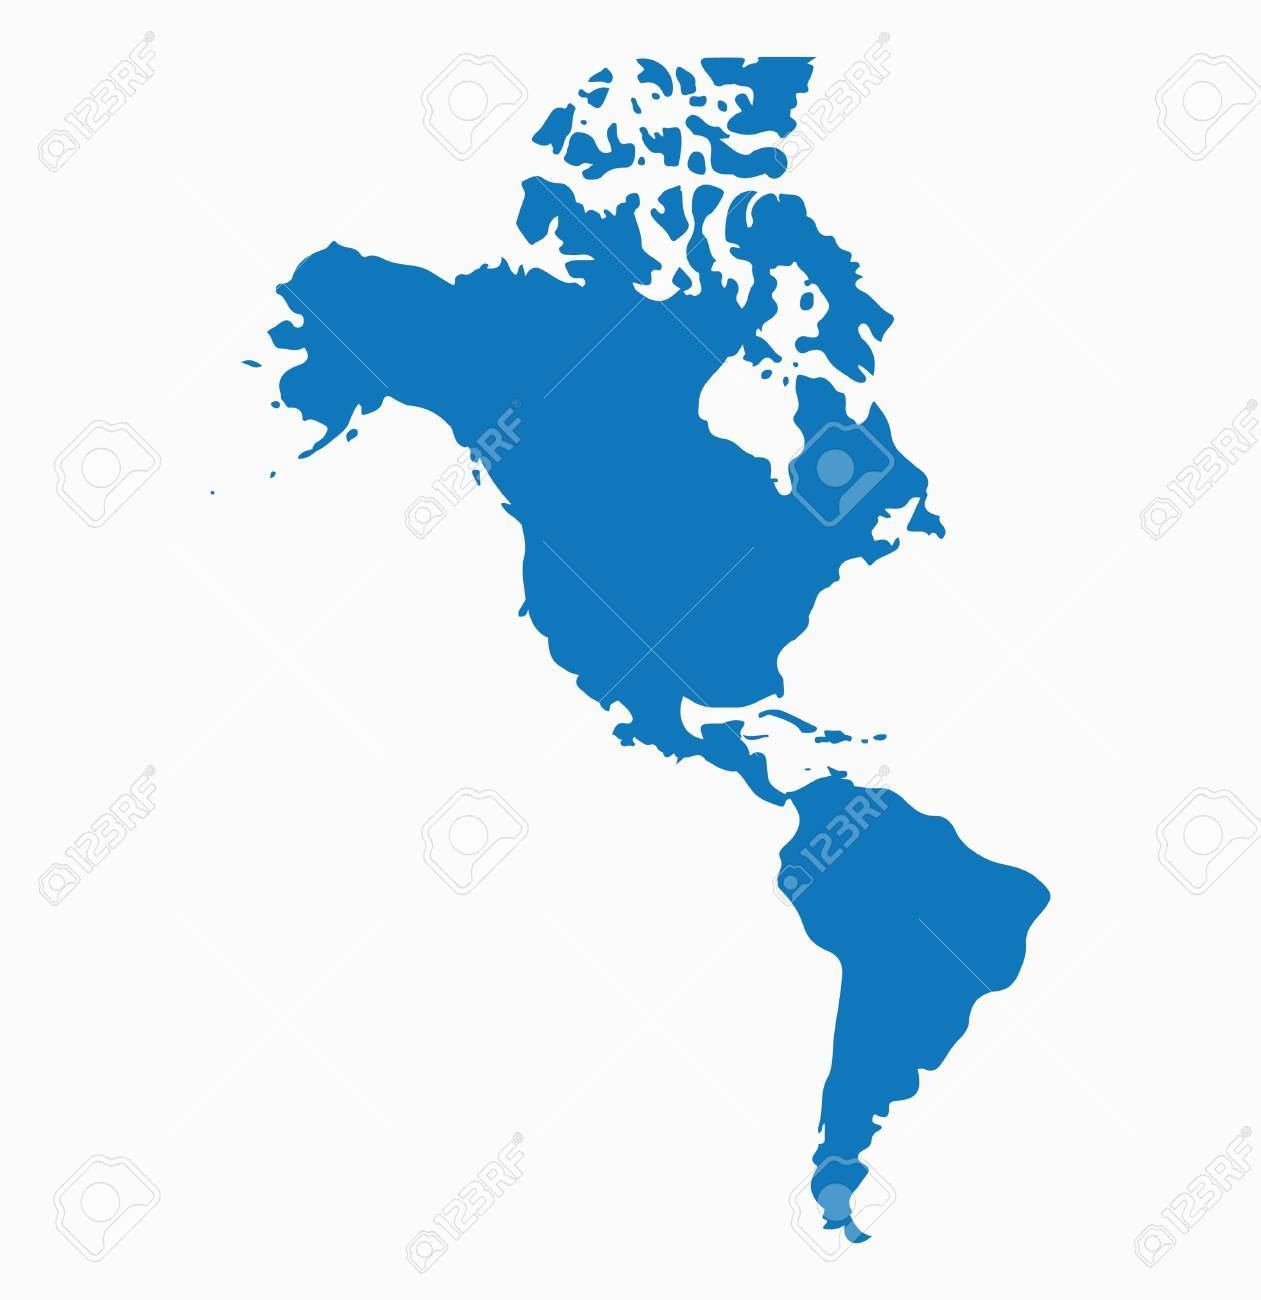 Blank Blue similar North and South America map isolated on white..